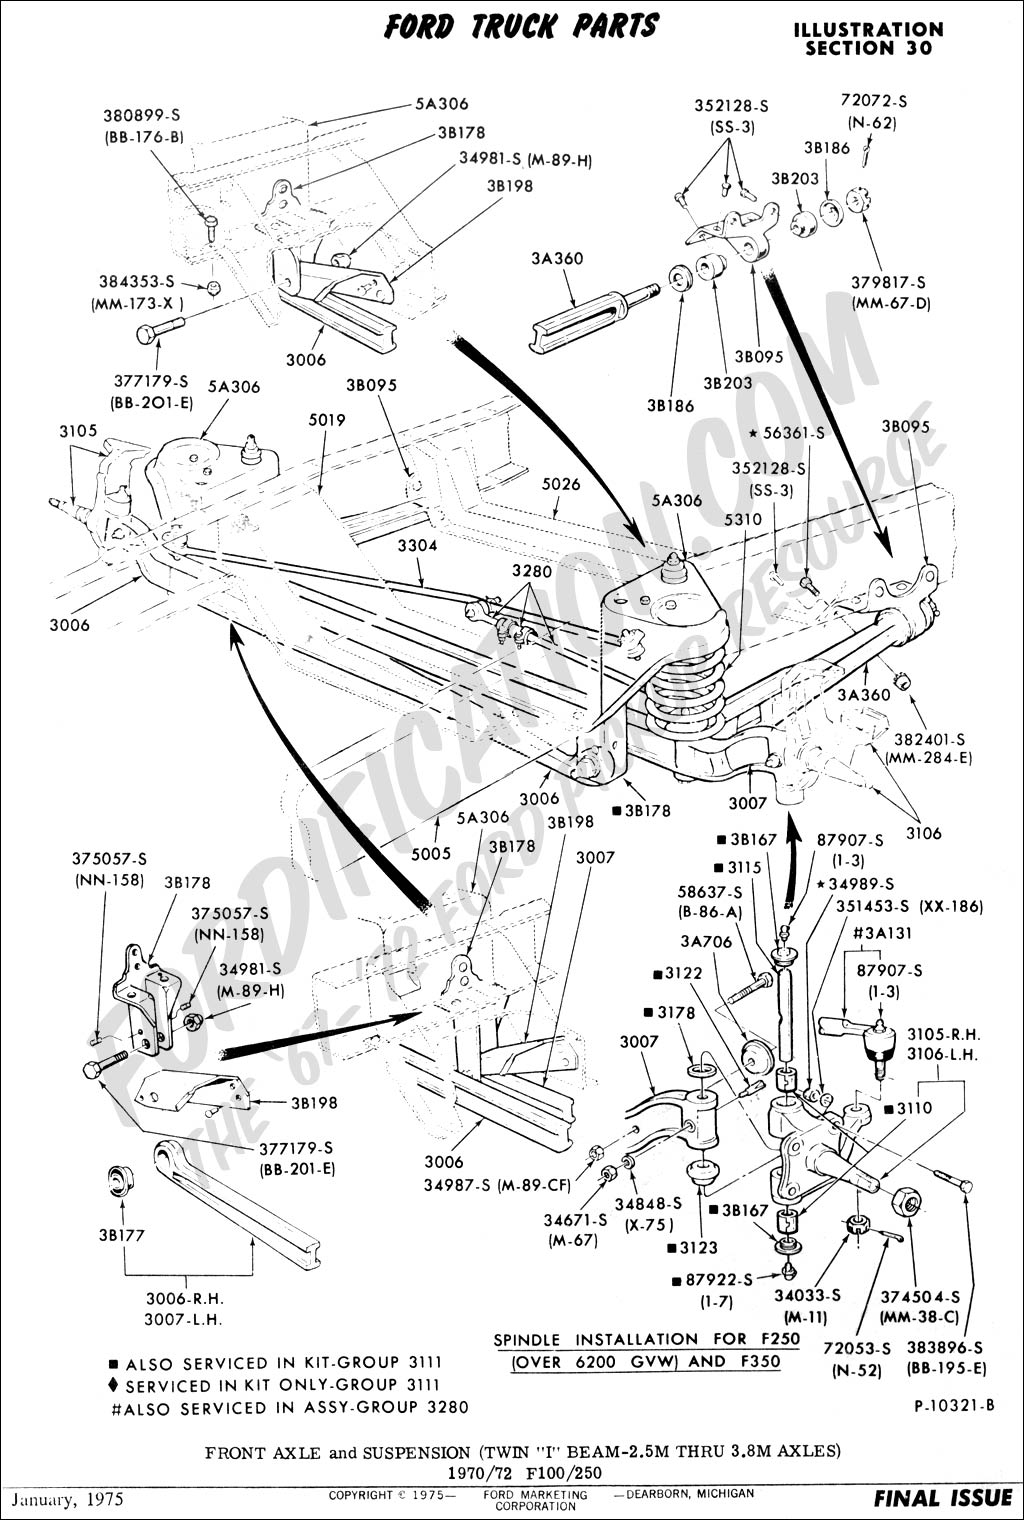 1999 Chevrolet Camaro Front Suspension Schematics Diagram Front also 1996 Ford F250 4x4 Suspension Diagram together with Mbg  Rearaxleparts additionally 1e8aw Remove Front Wheel Drive Stub Axle likewise Dana 60 Axle Id Help 168006. on front end hub on 1996 ford f250